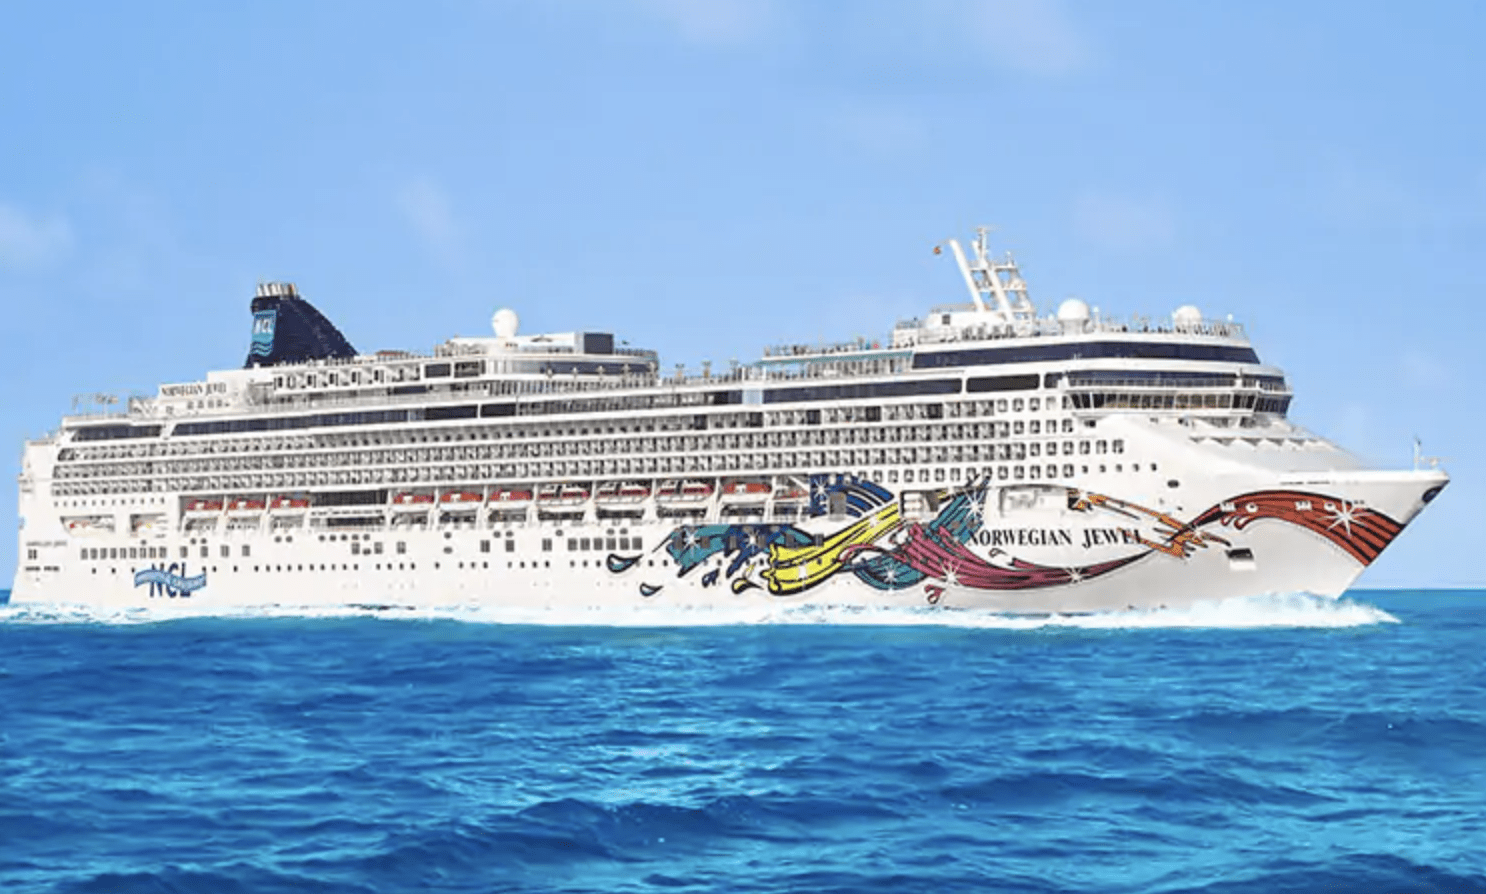 Extreme measures: This cruise destination just banned ship arrivals until 2022